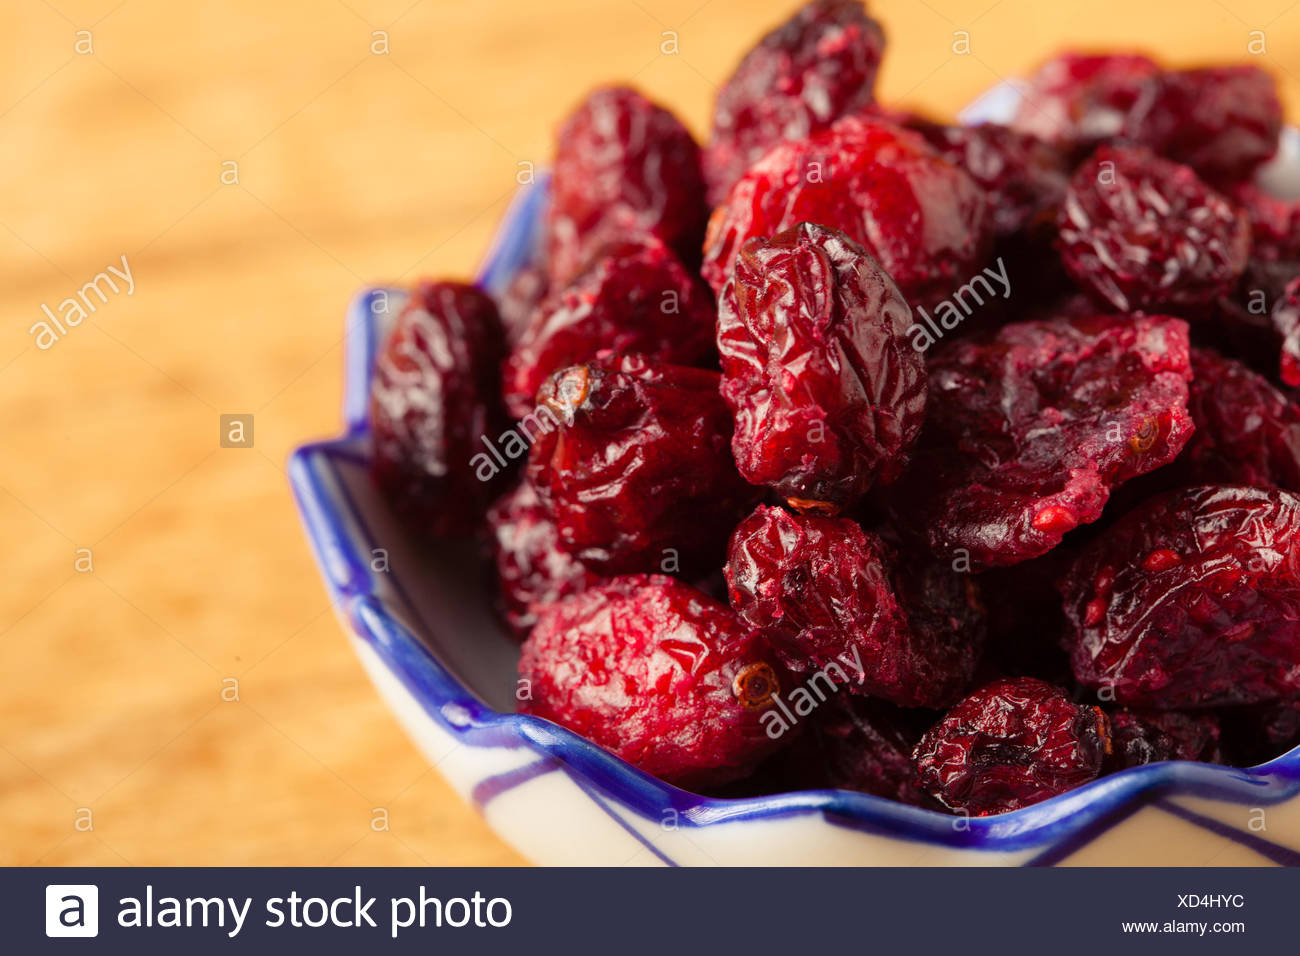 healthy food organic nutrition. dried cranberries cranberry fruit in